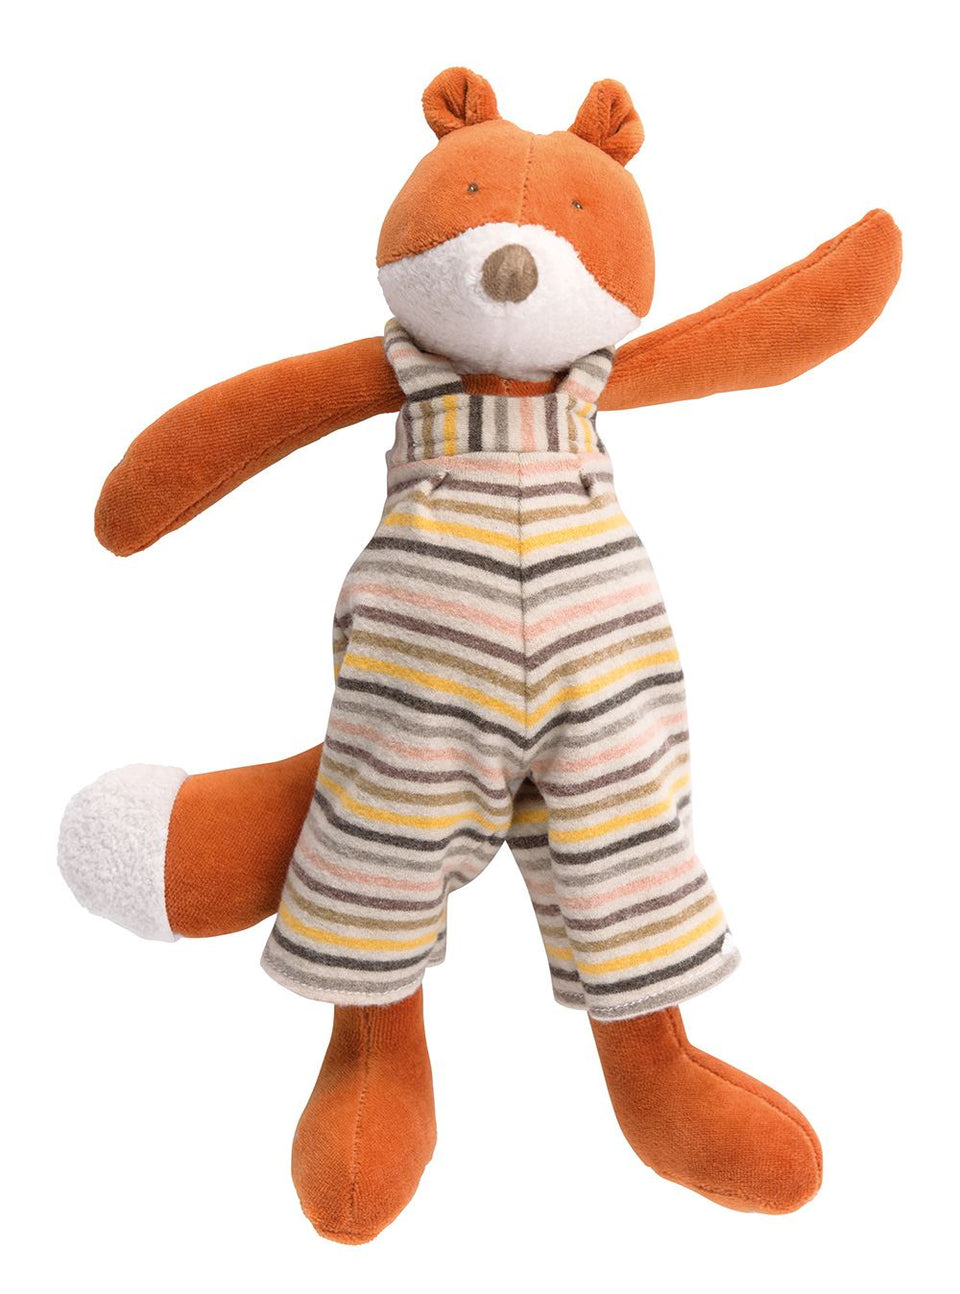 Moulin Roty La Grande Famille Les Petits Freres 30cm Little Gaspard the fox